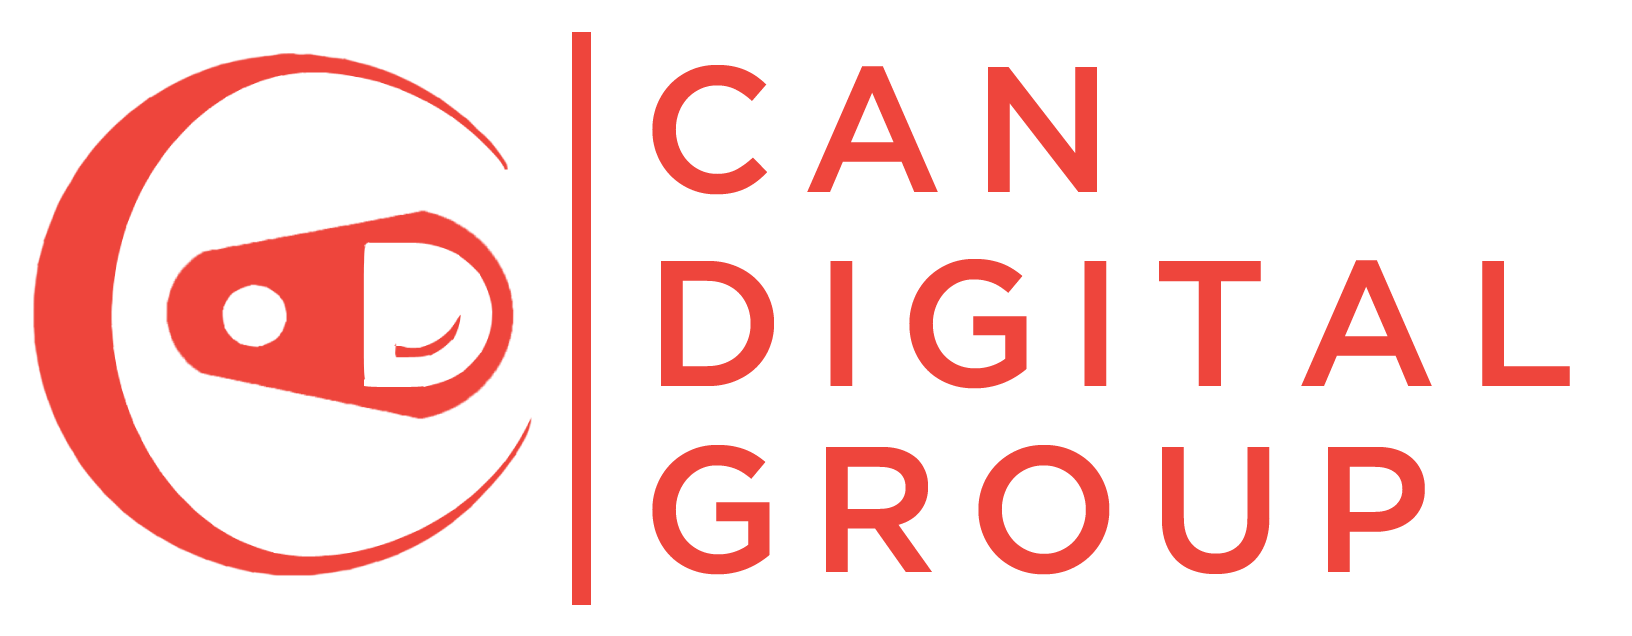 Can Digital Group